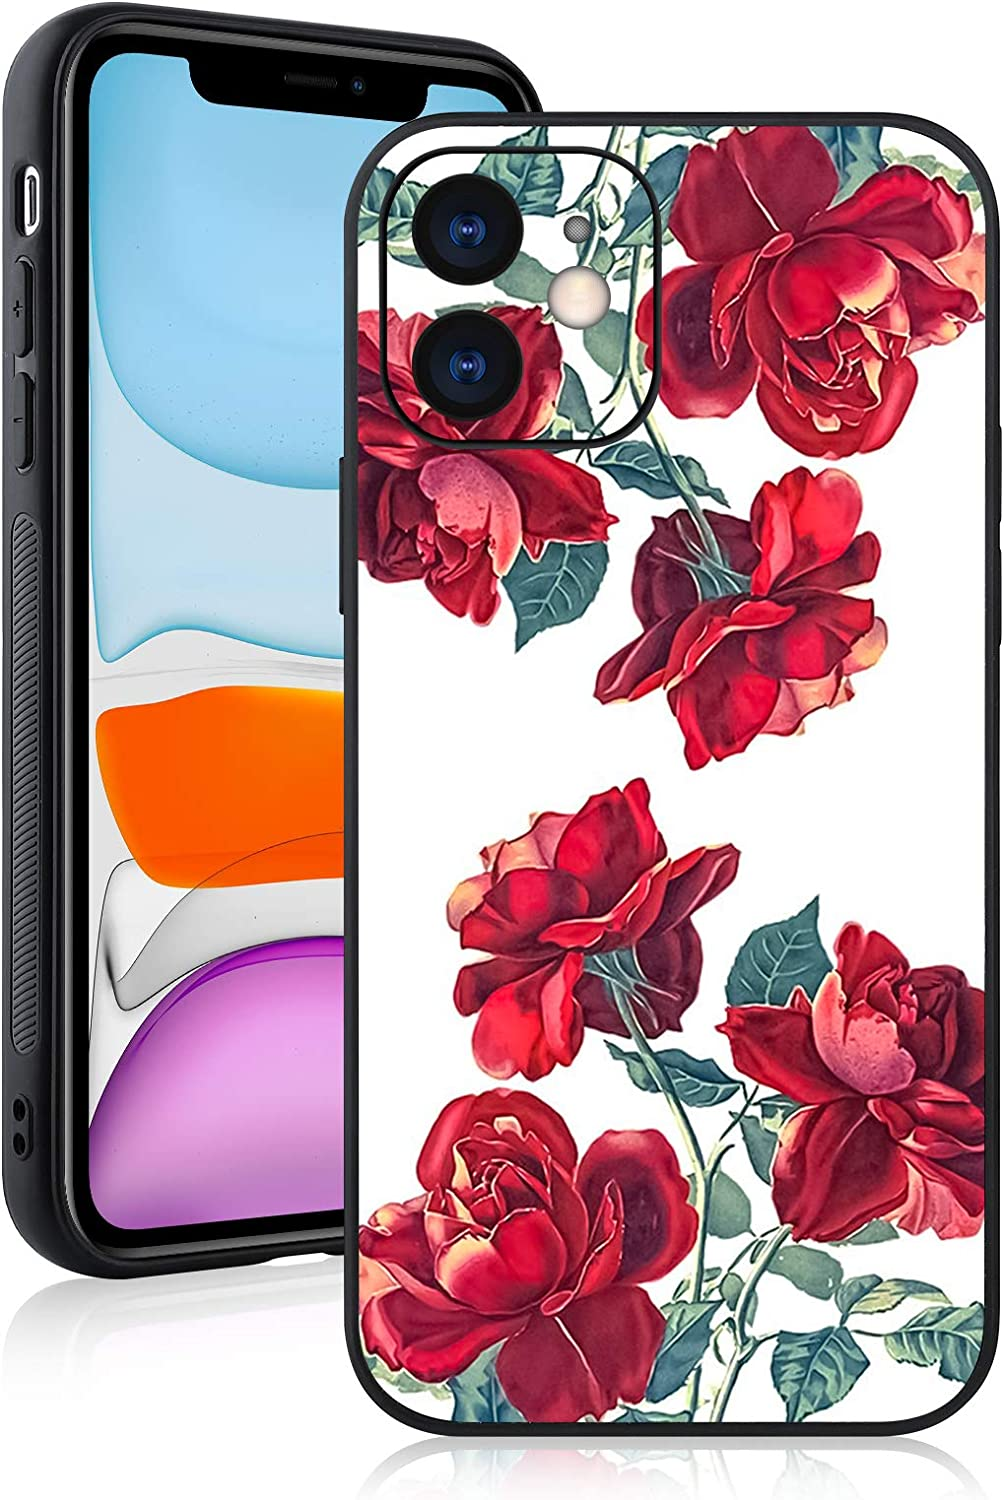 Compatible with iPhone 11 Case Rose with Camera Lens Protective Cover for Girl for Women,Hard PC Back Anti Slip Grip Bumper Protective Case for iPhone 11 6.1 Inch 2019 Rose